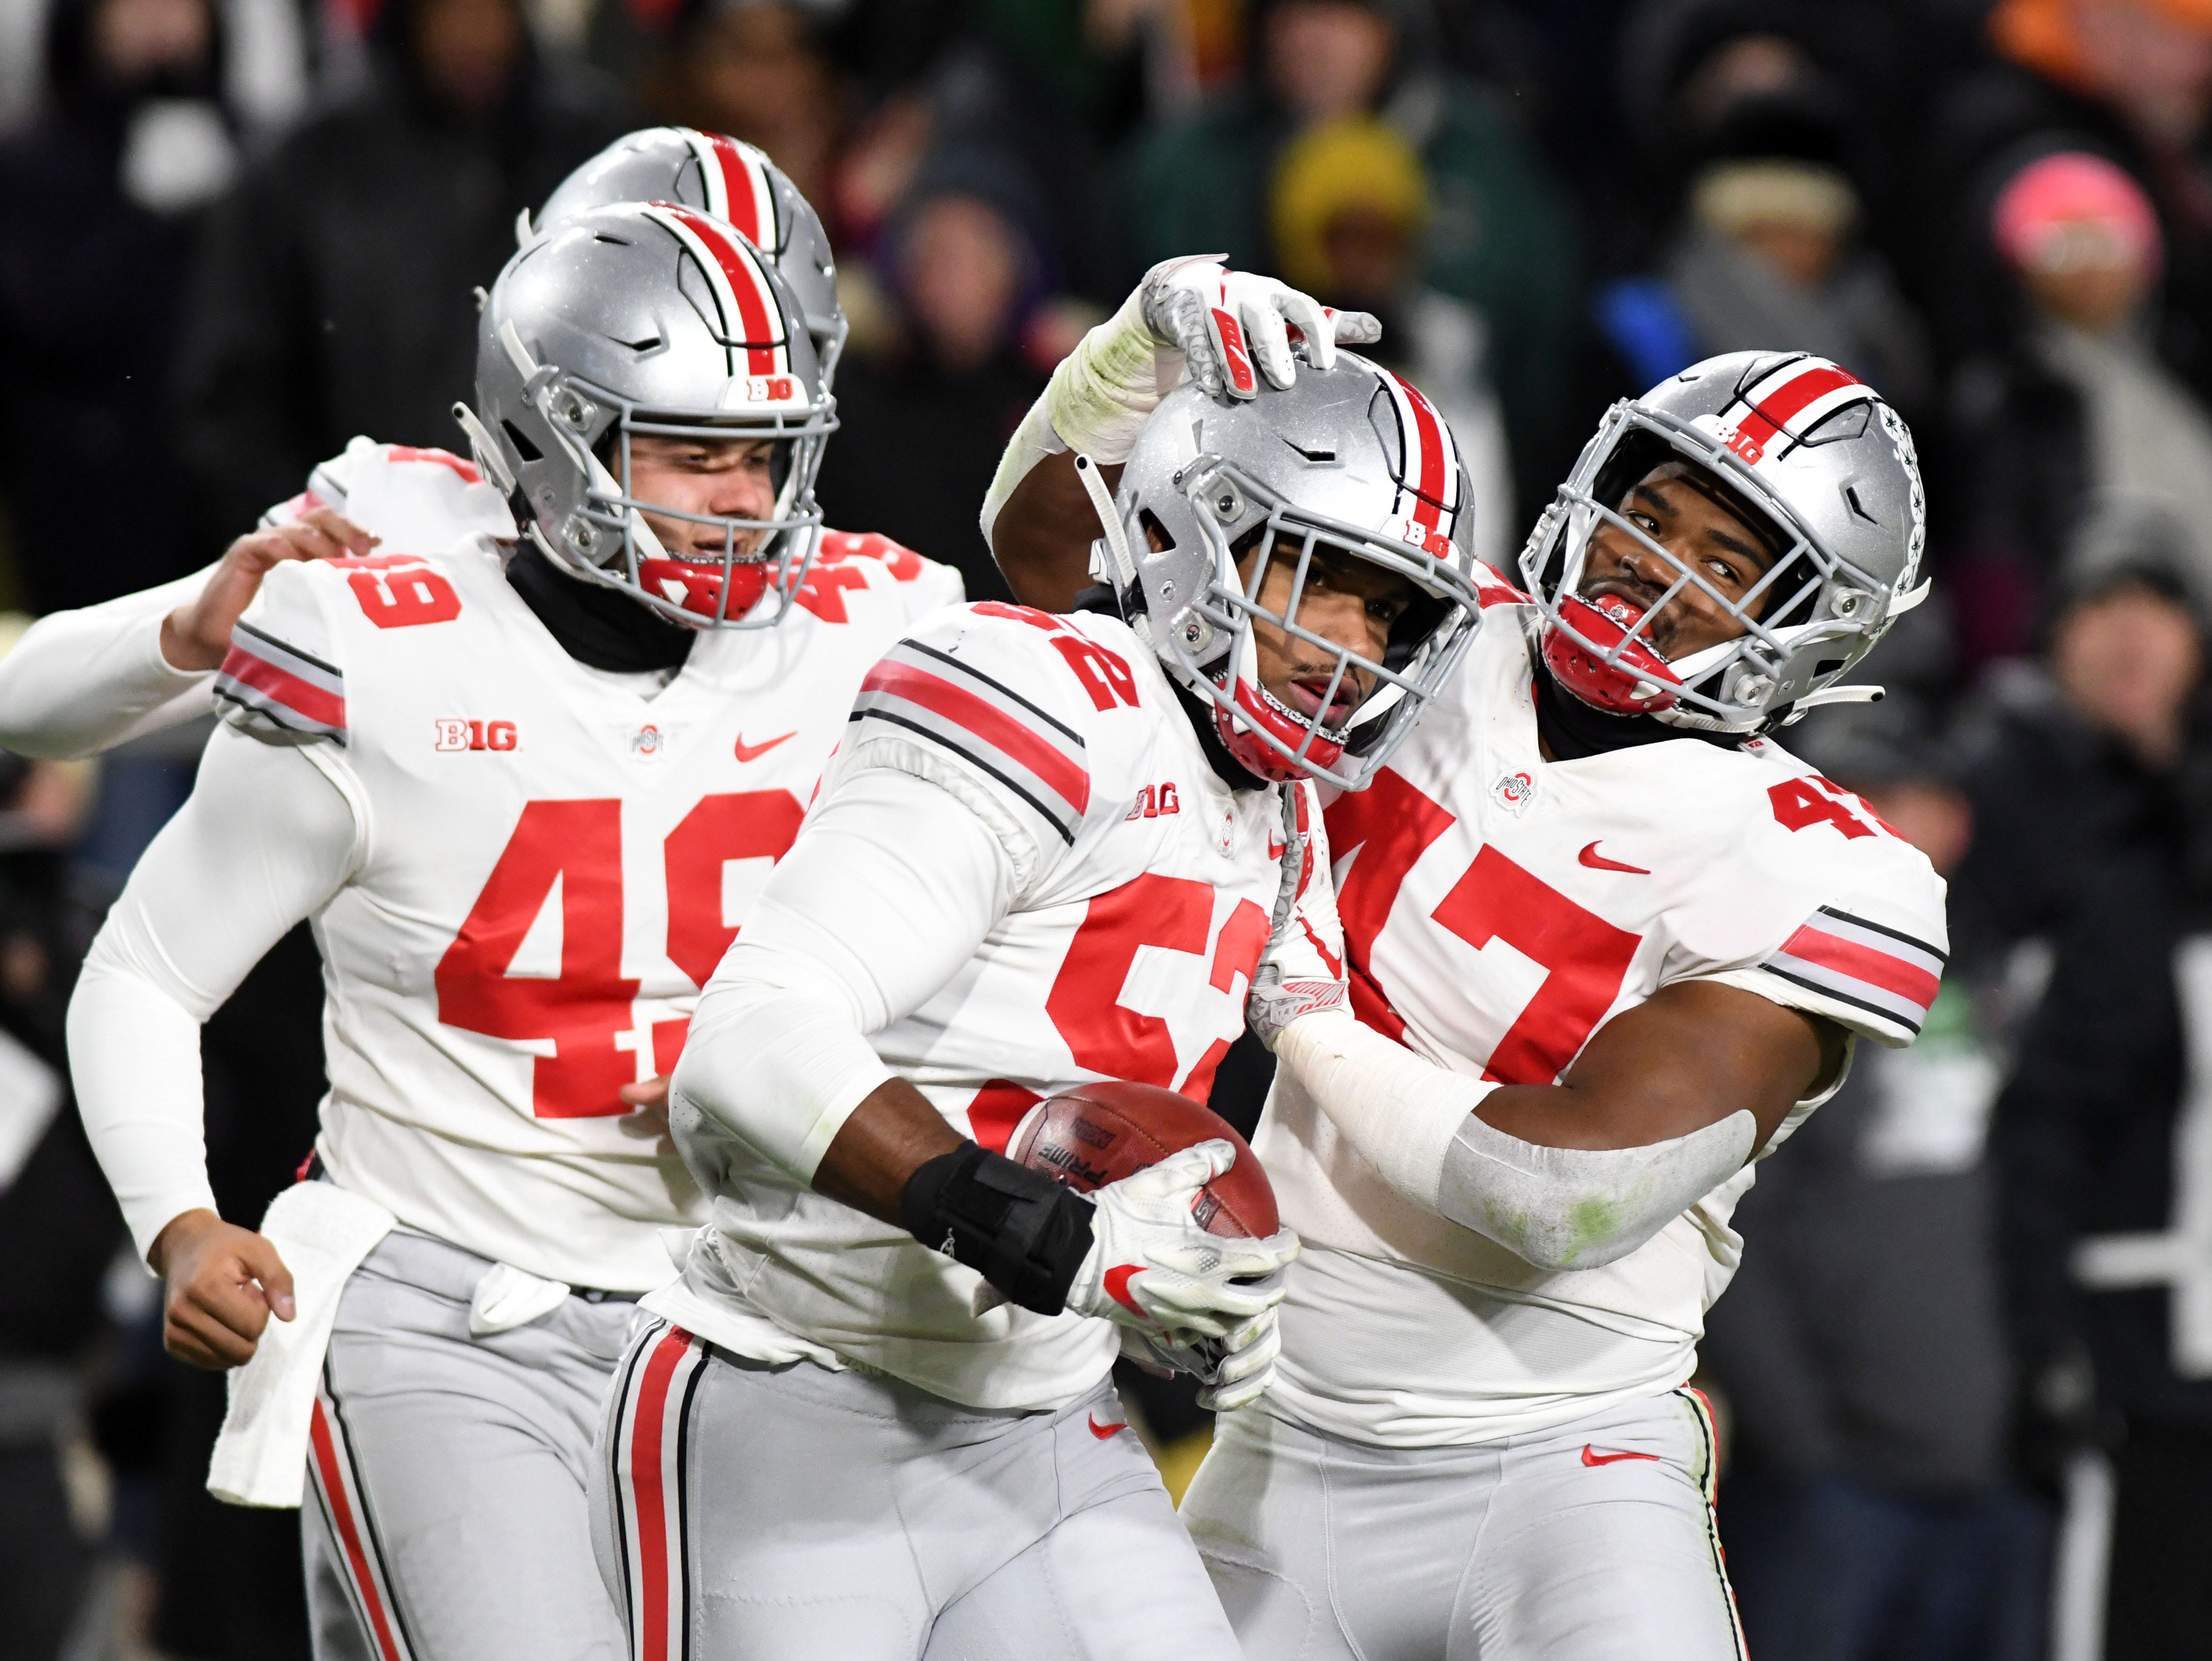 Oct 20, 2018; West Lafayette, IN, USA; Ohio State Buckeyes lineman Dante Booker (52) and linebacker Justin Hillard (47) celebrate a play against the Purdue Boilermakers in the first half at Ross-Ade Stadium. Mandatory Credit: Thomas J. Russo-USA TODAY Sports